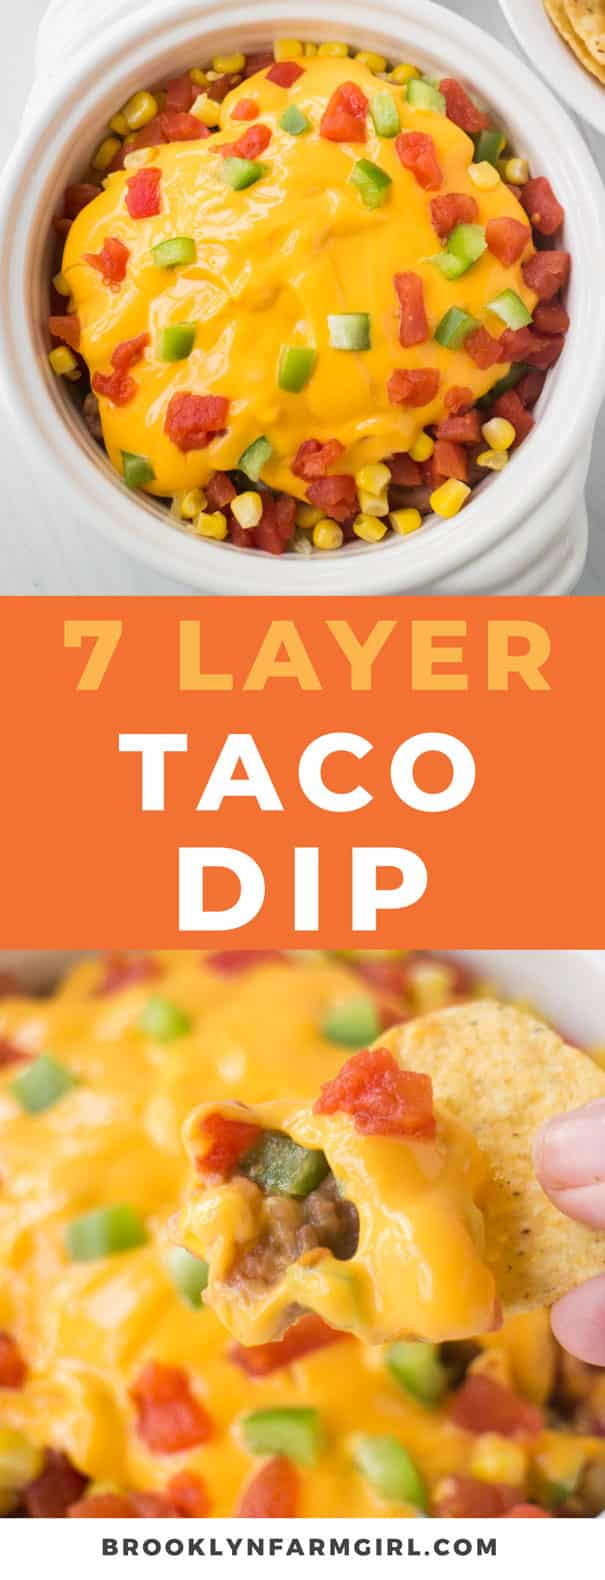 7 Layer Taco Dip is easy to make in 10 minutes with vegetables and cheese! This meatless Mexican dip is made without cream cheese for a healthy recipe. Serve hot or cold as a party appetizer.